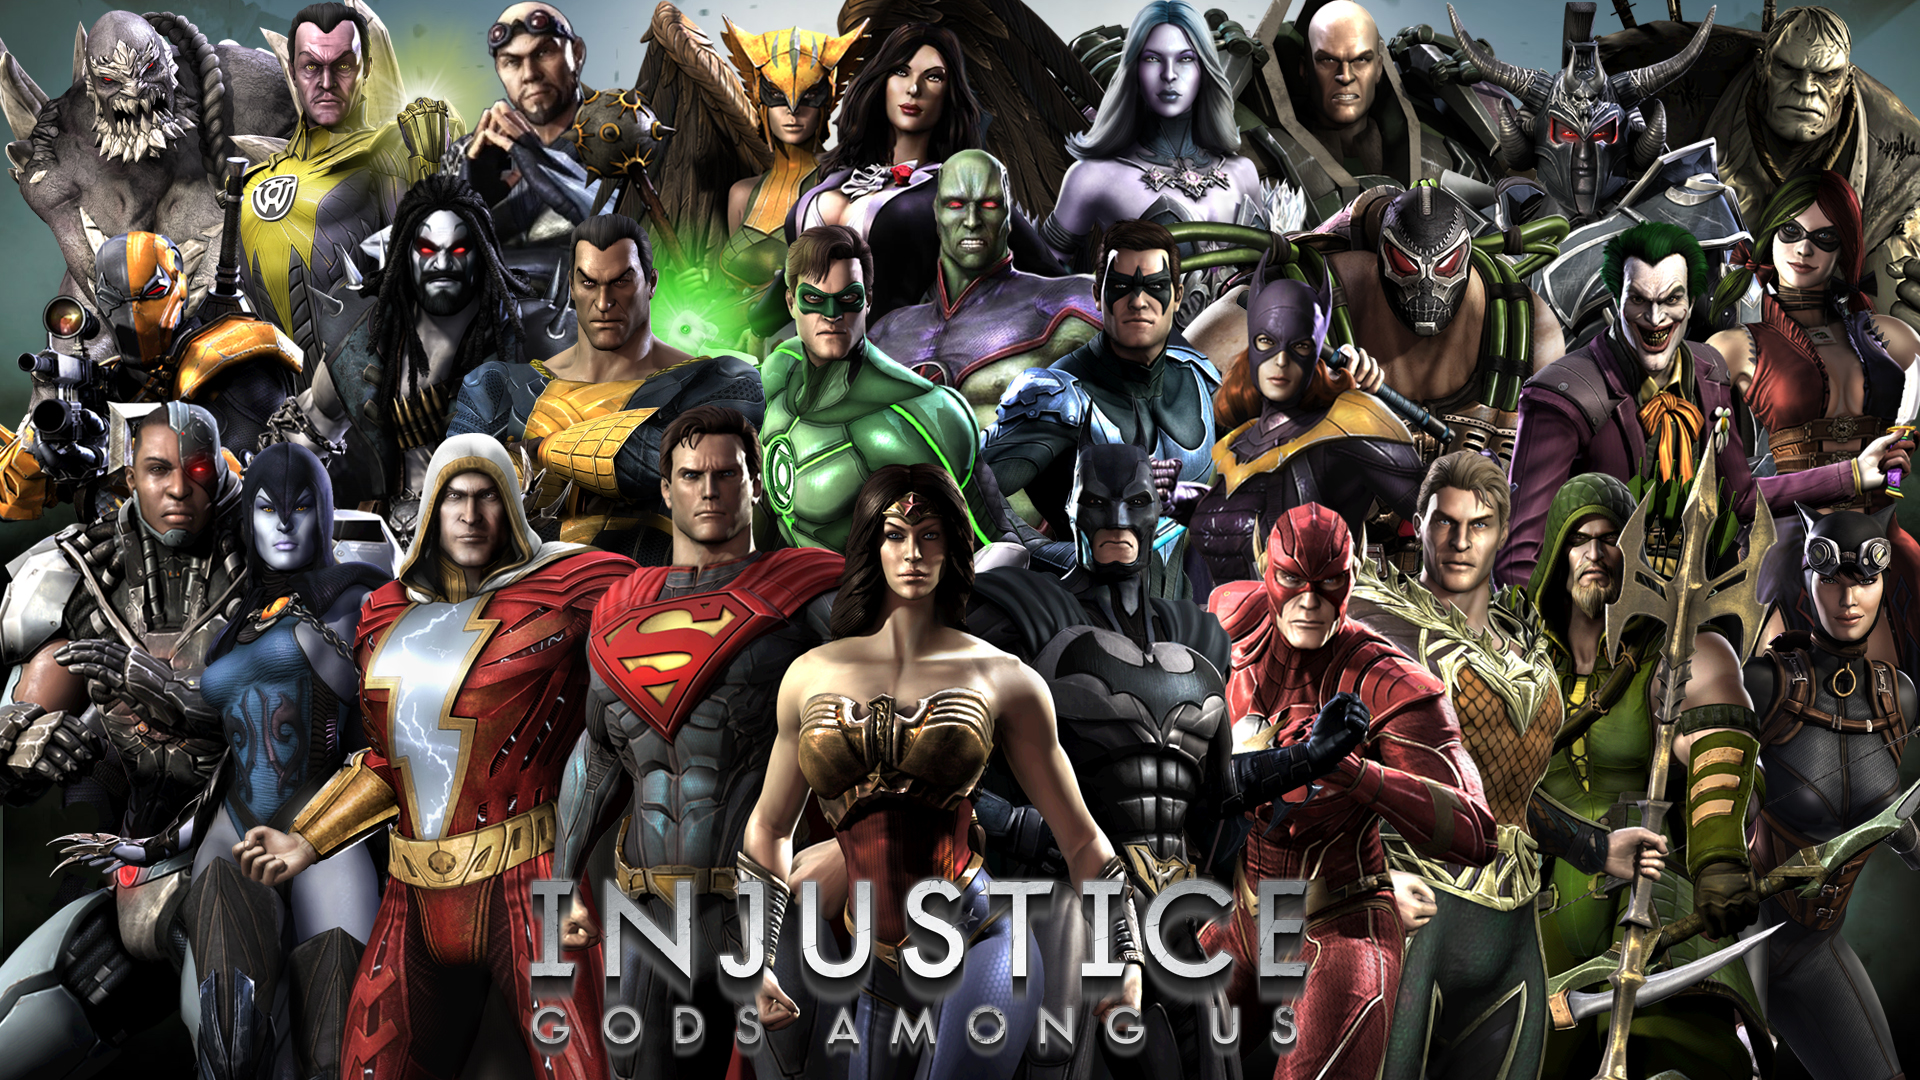 injustice ultimate edition ps3 characters